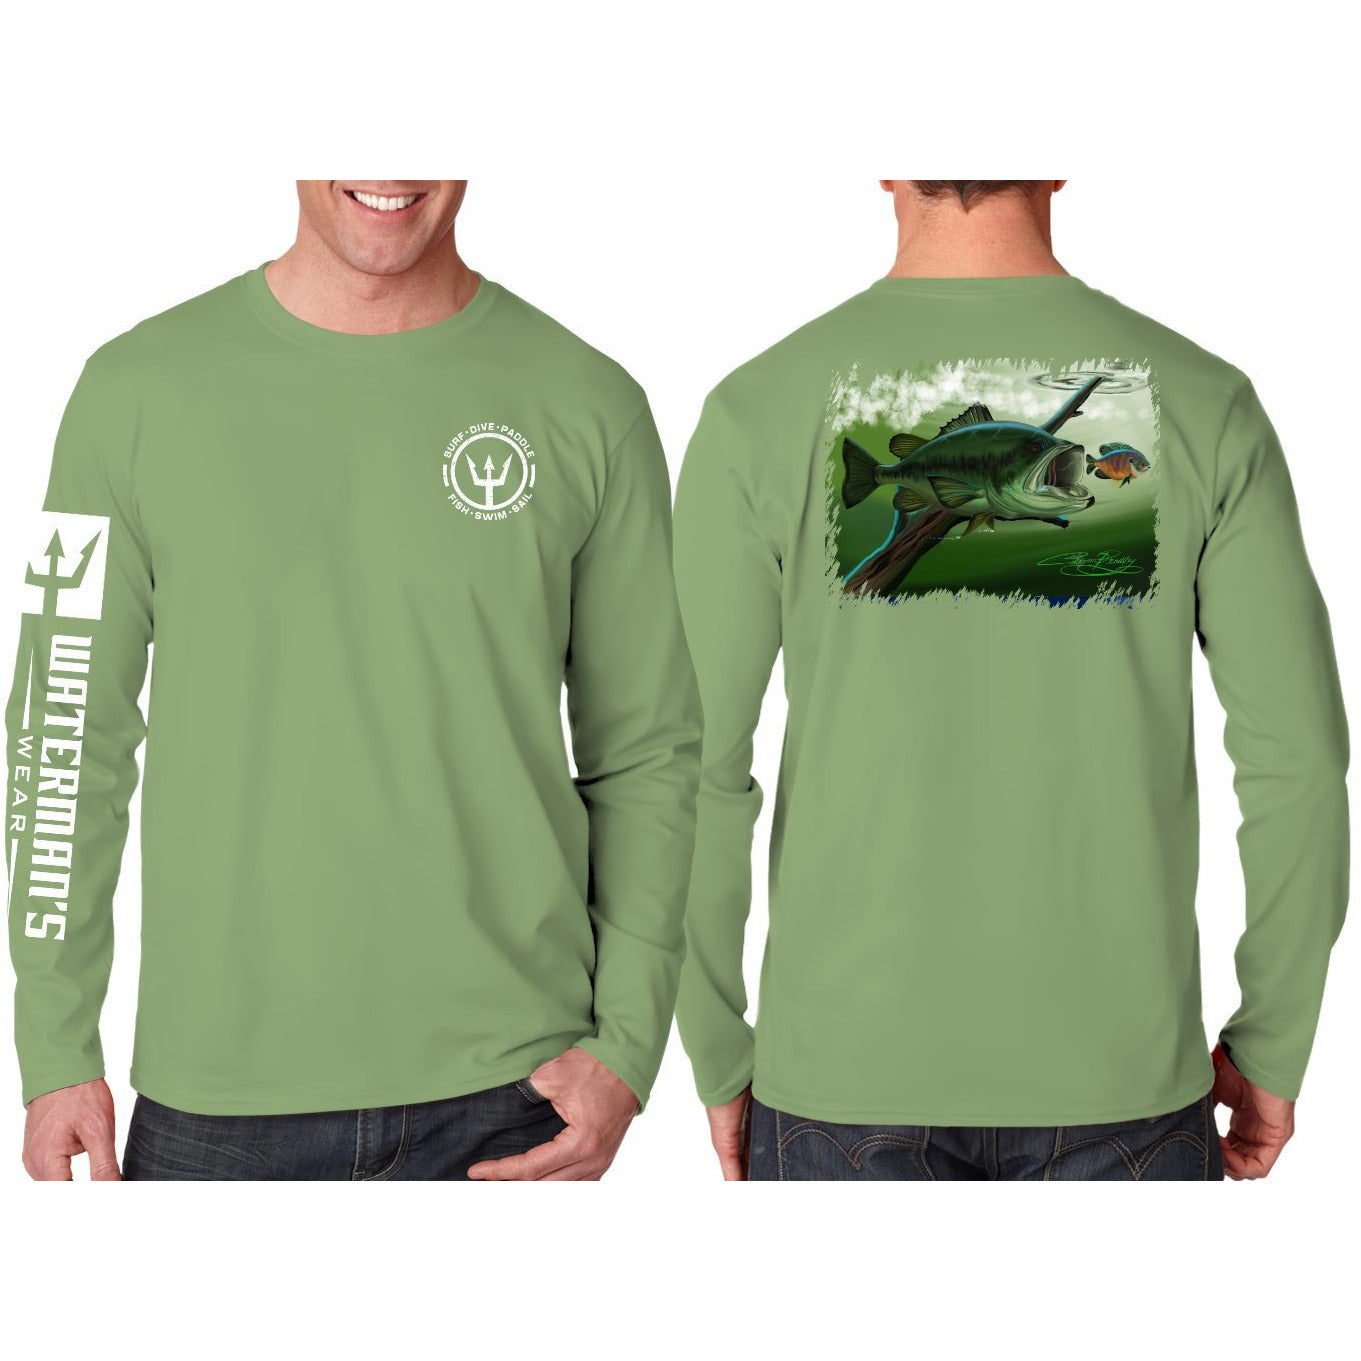 Hungry Large Mouth Bass Long Sleeve UPF50 Fishing Shirt by Coleman Bradley